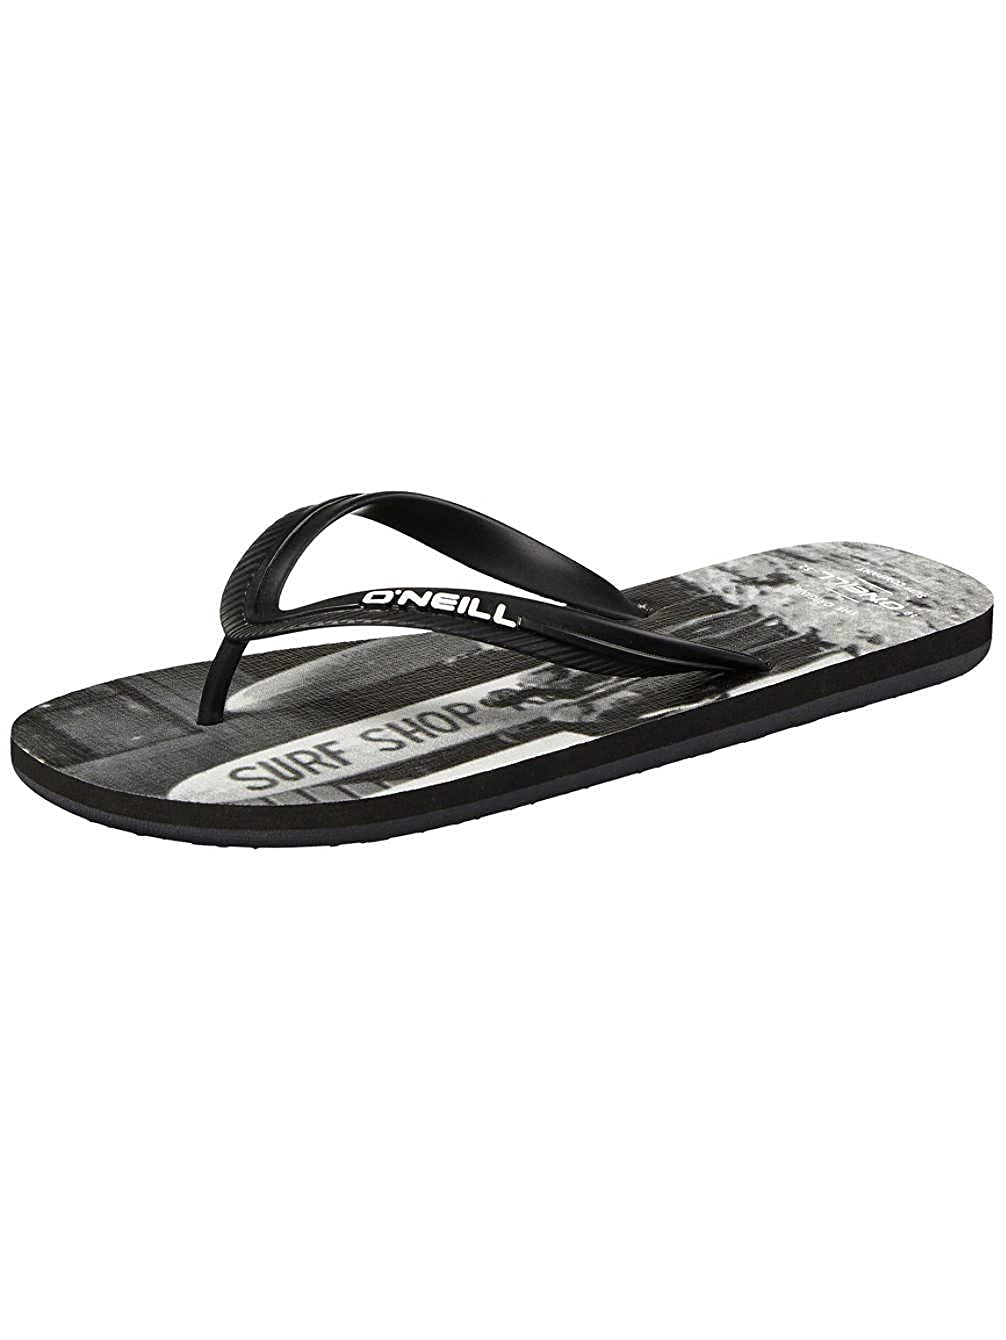 O'Neill FM Profile Photo Flip Flops, Chanclas para Hombre